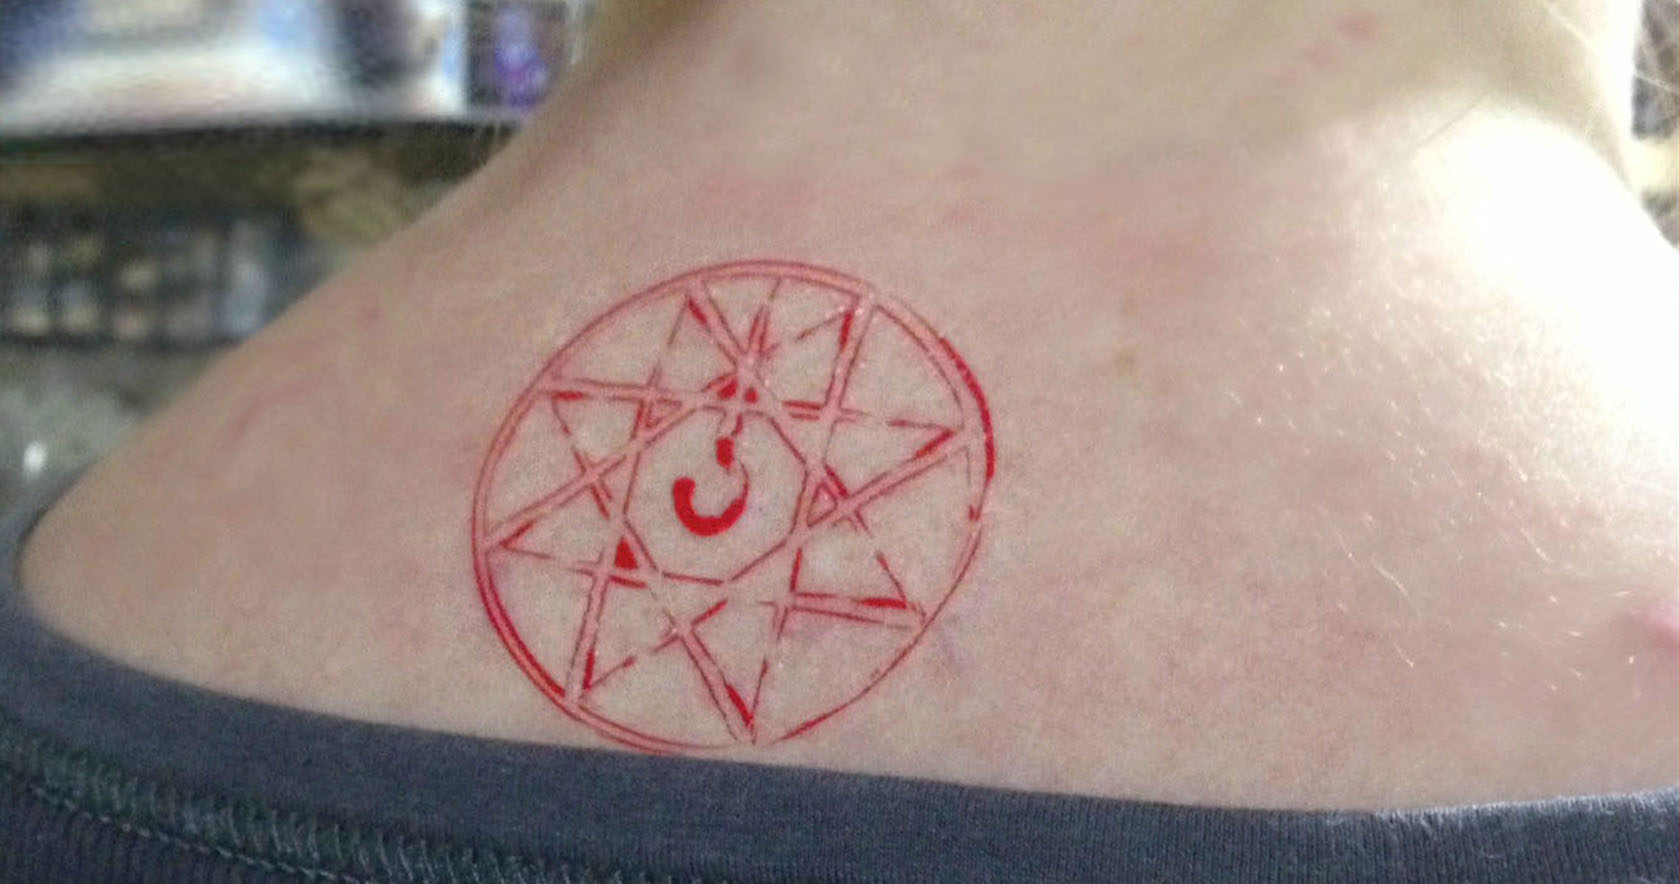 Fma Blood Seal Temporary Tattoo Shut Up And Take My Yen Ideas And Designs